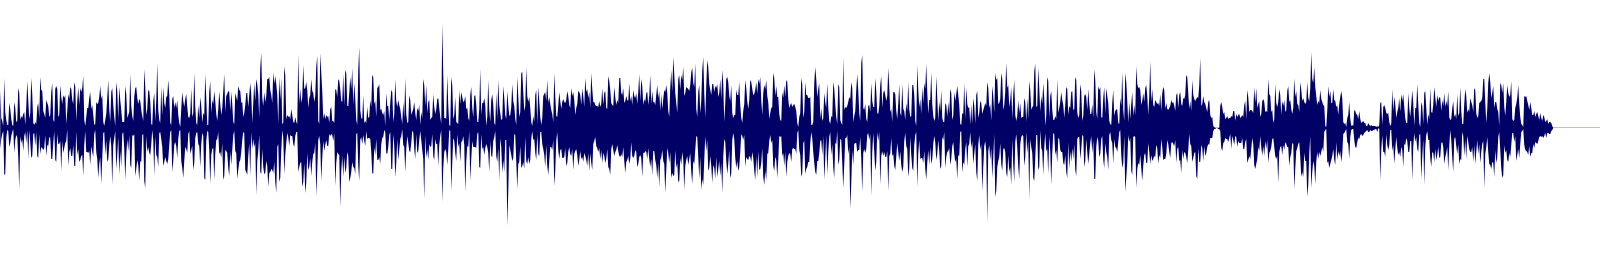 waveform of track #107926